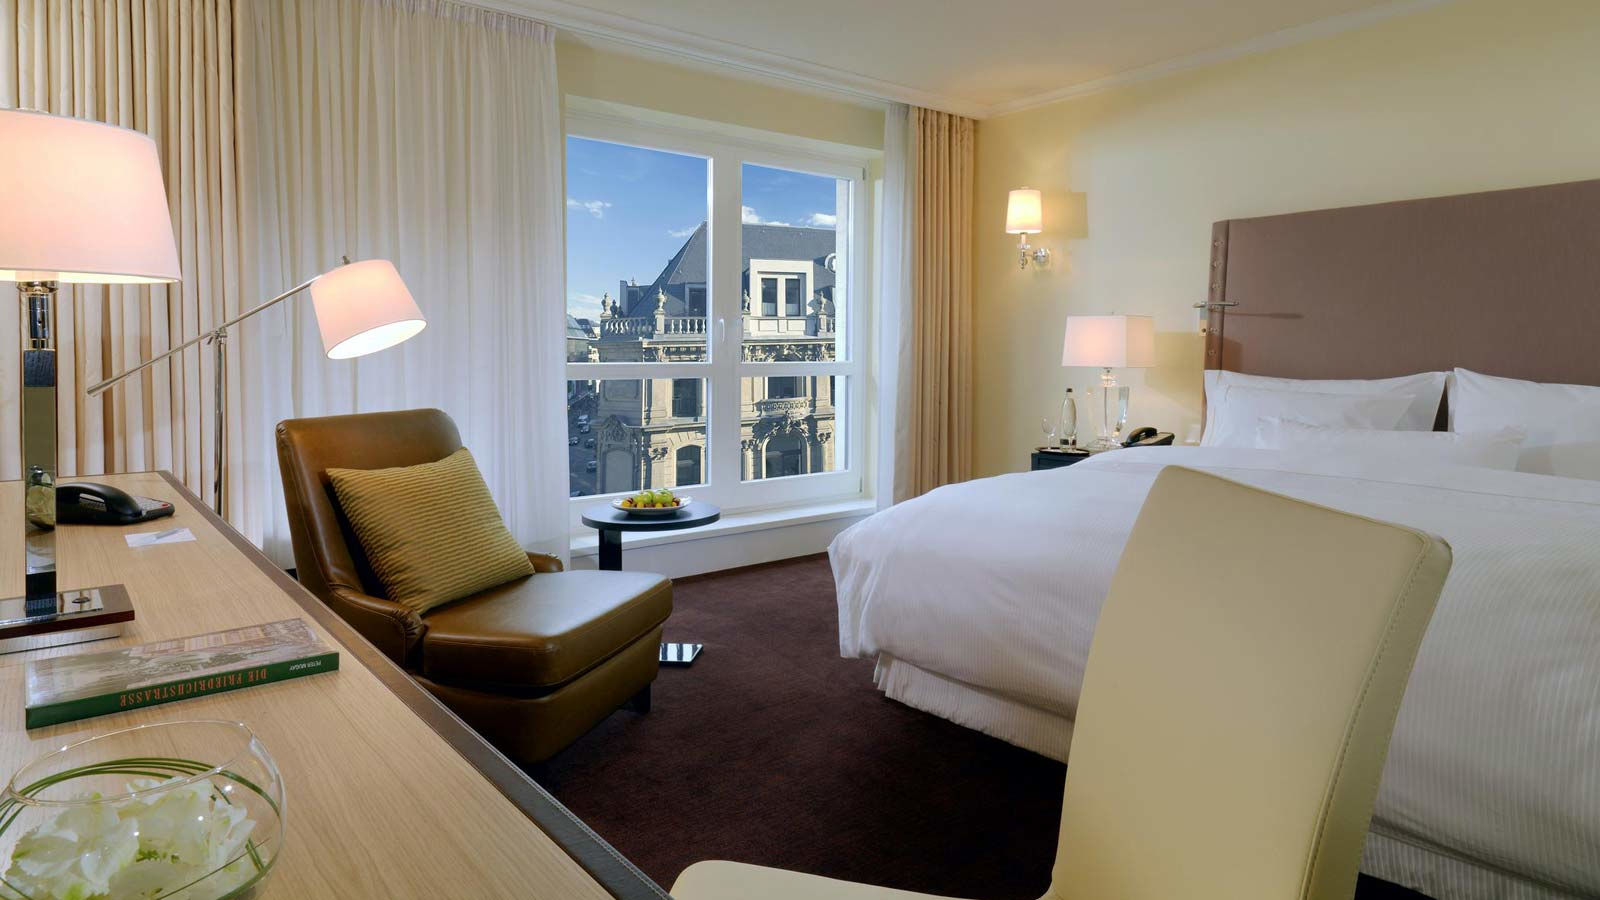 Linden Superior room at The Westin Grand hotel Berlin